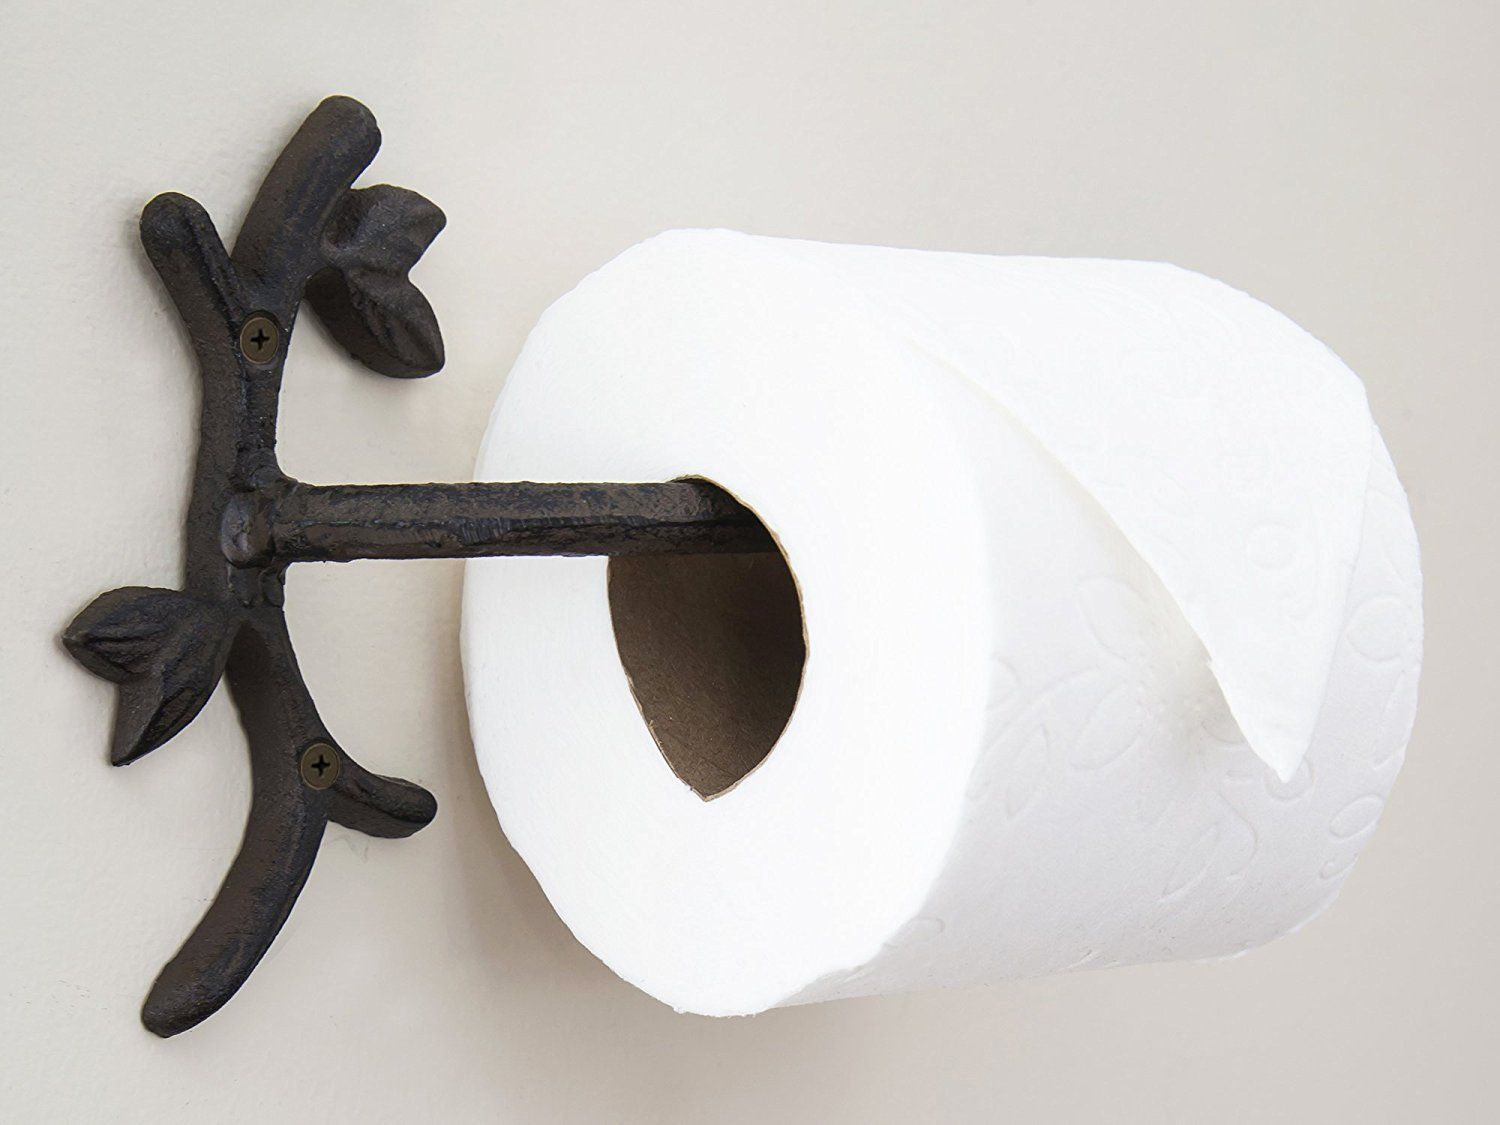 Amazon Com Toilet Paper Holder Branch With Leaves Cast Iron Wall Mounted Toilet Tissue Hold Toilet Paper Holder Wall Mounted Toilet Bathroom Tissue Holder